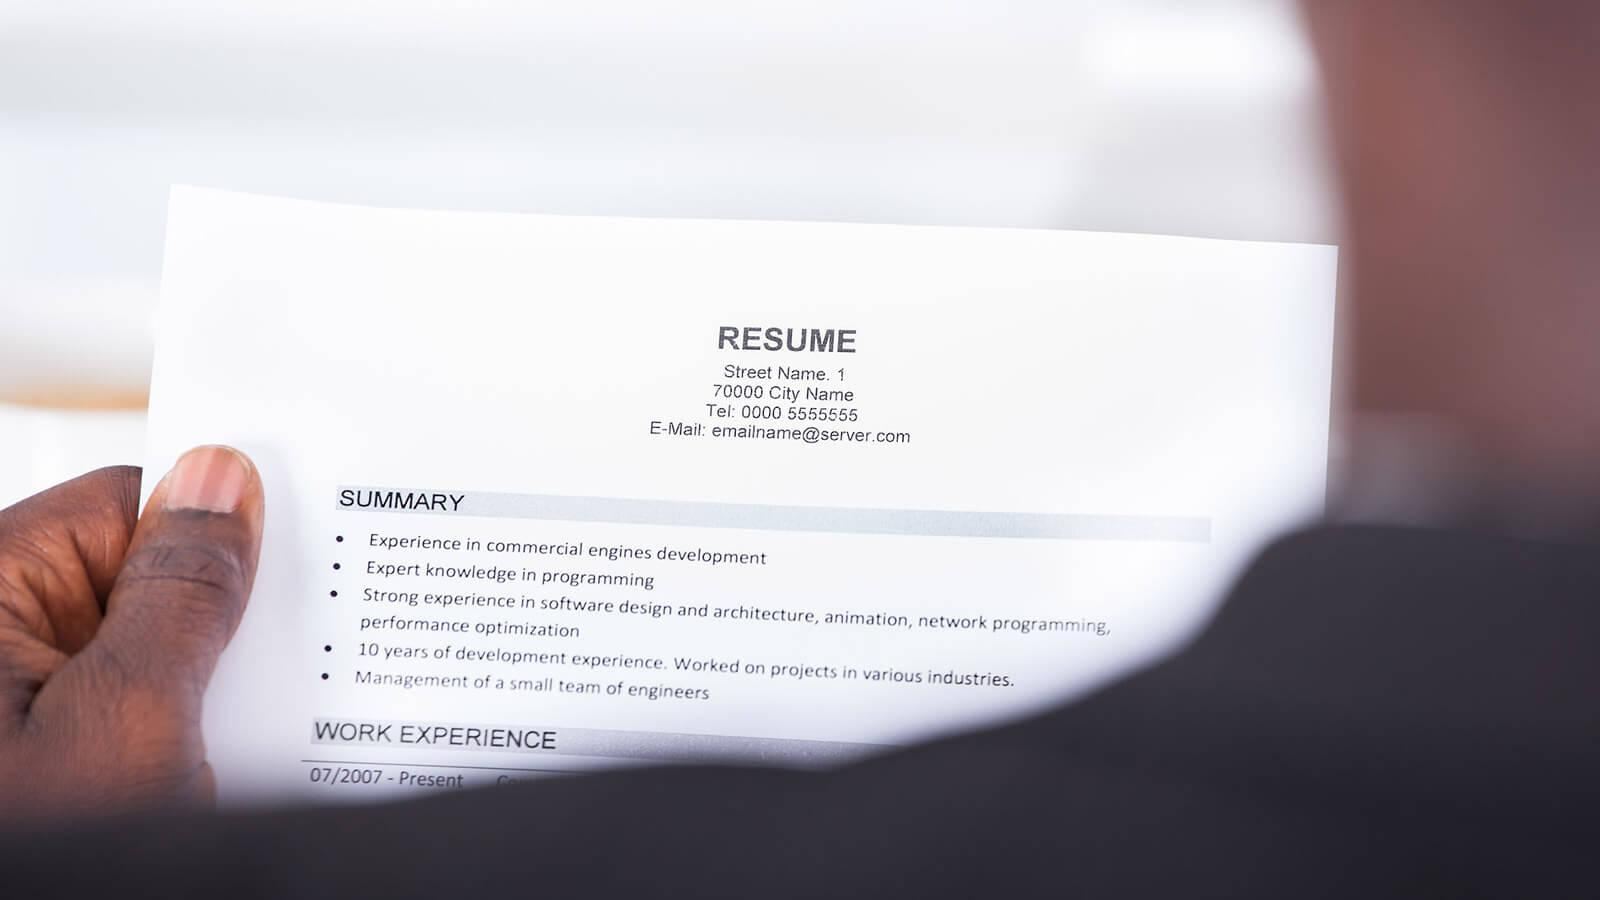 reading beyond the written resumes resume software priya tafep talks nov column generic Resume Resume Reading Software